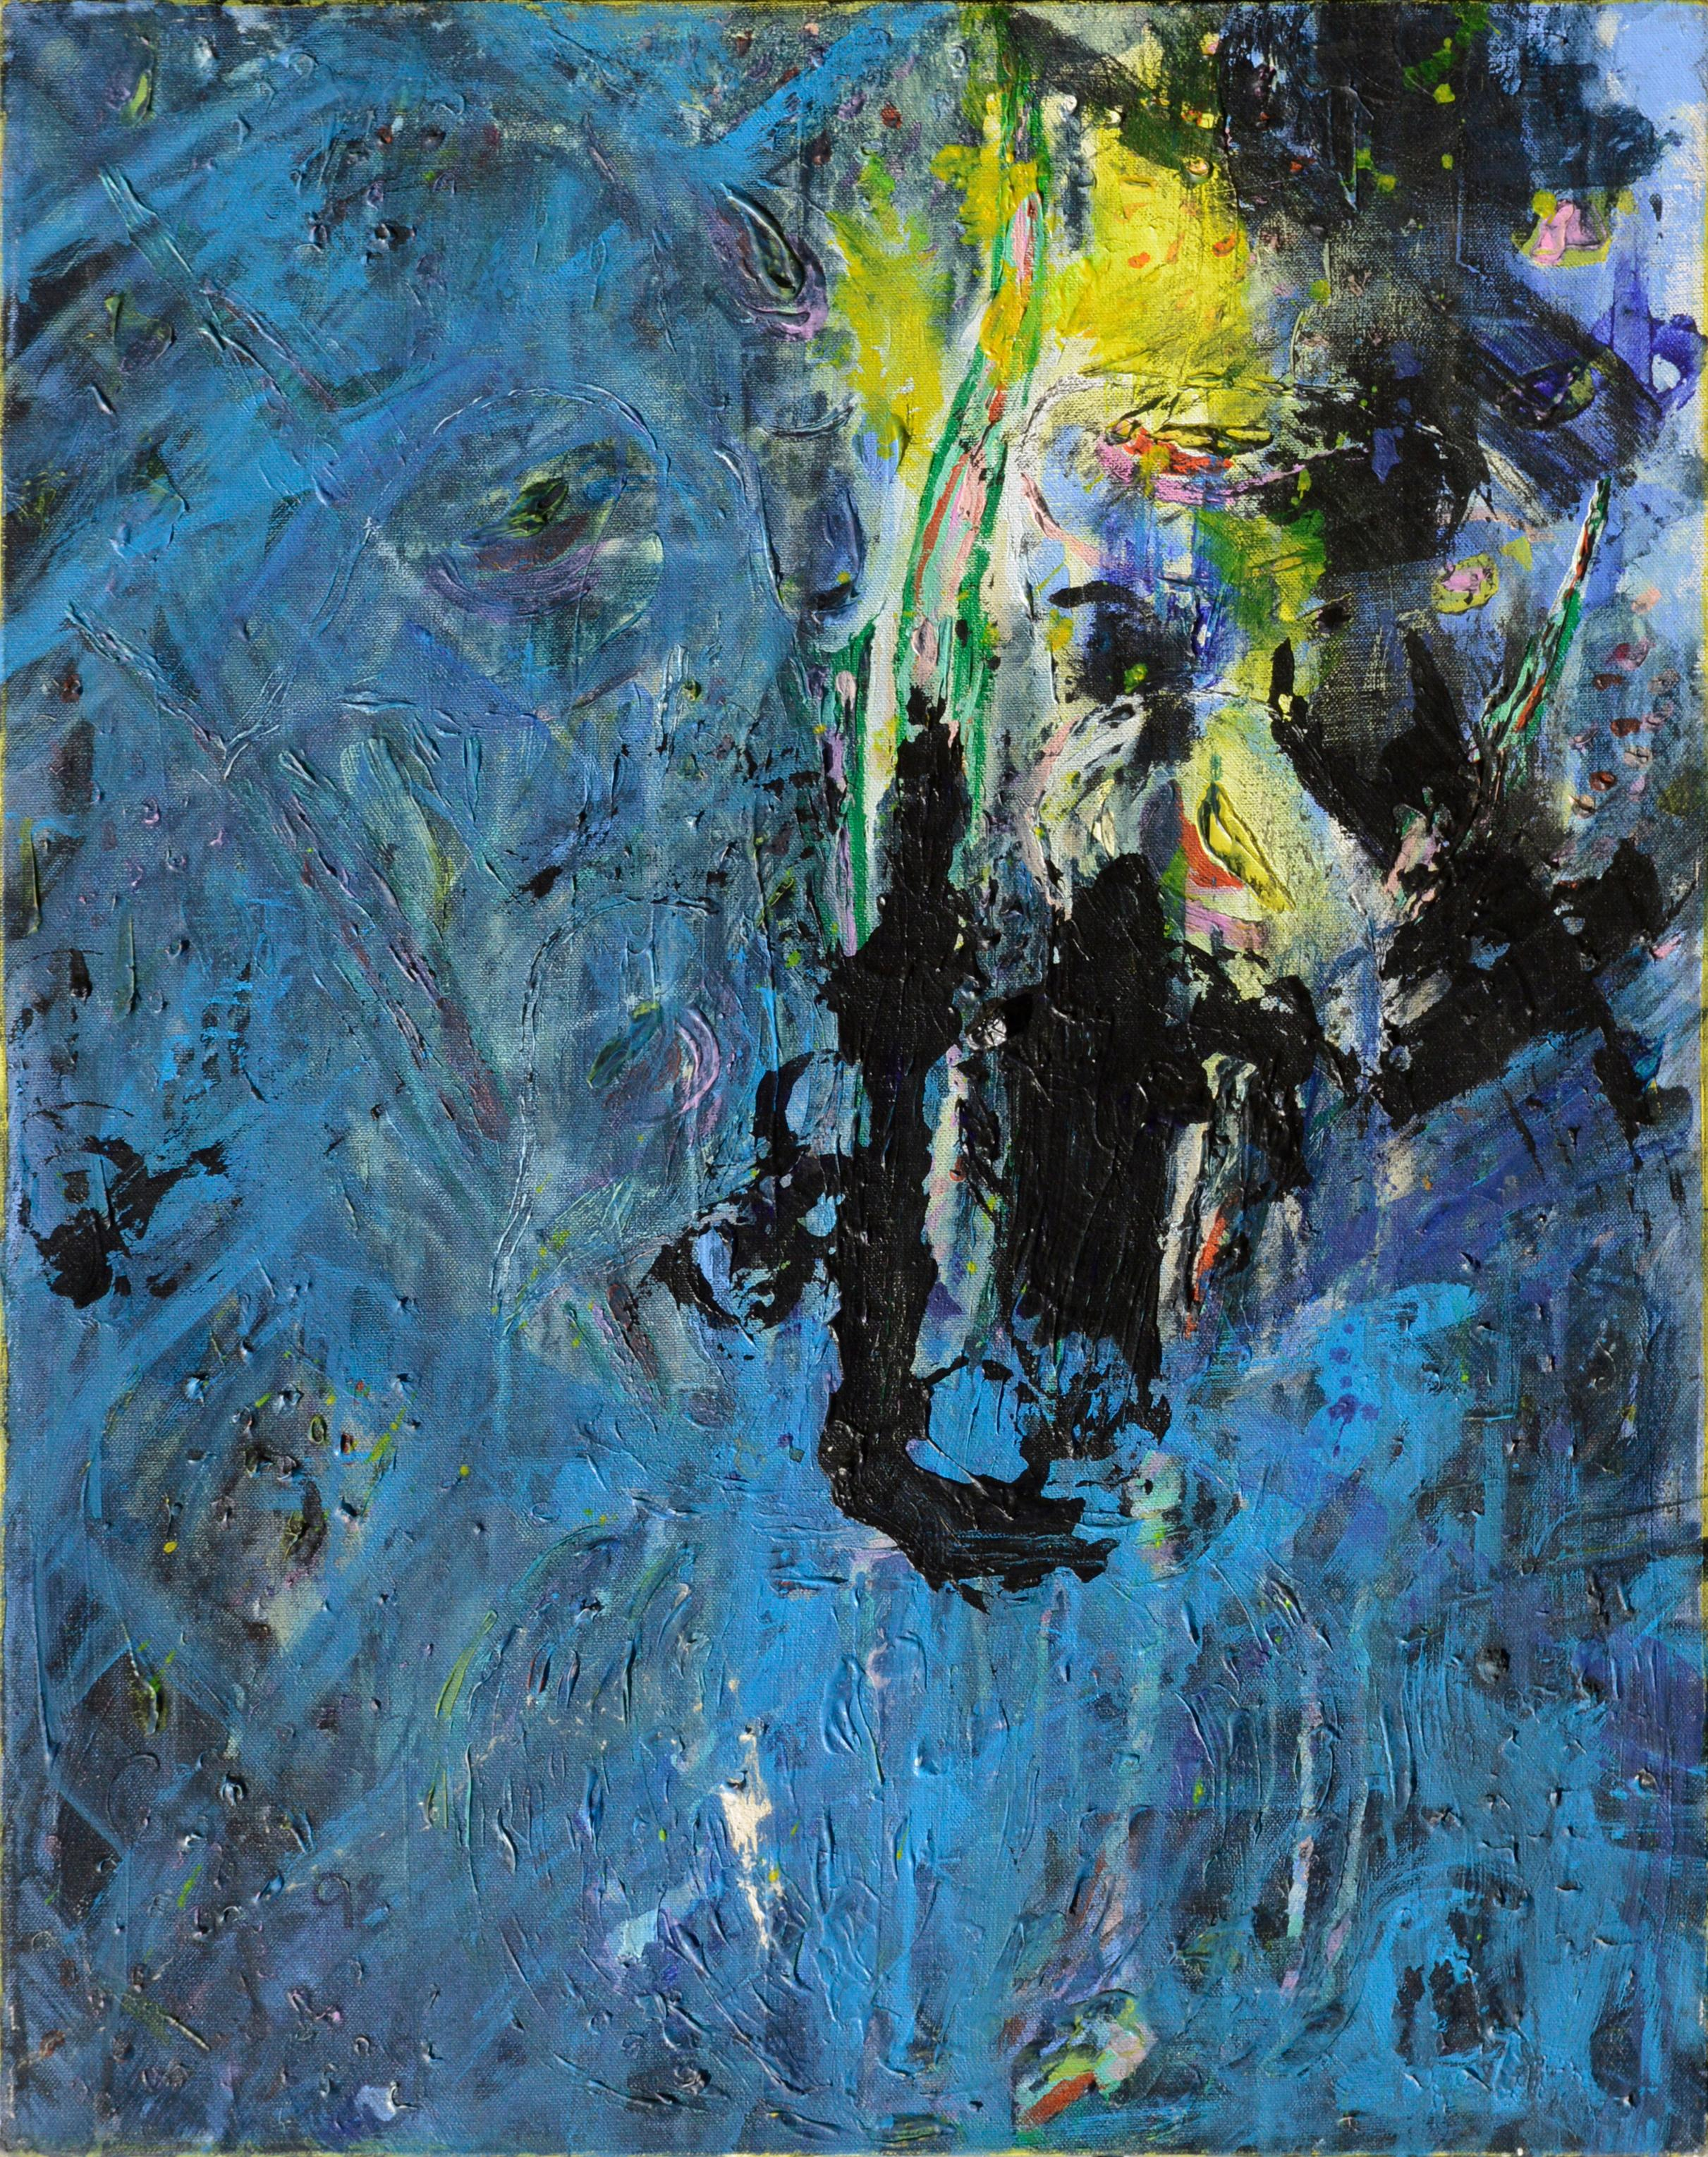 Abstract Blue, Yellow, and Black Composition